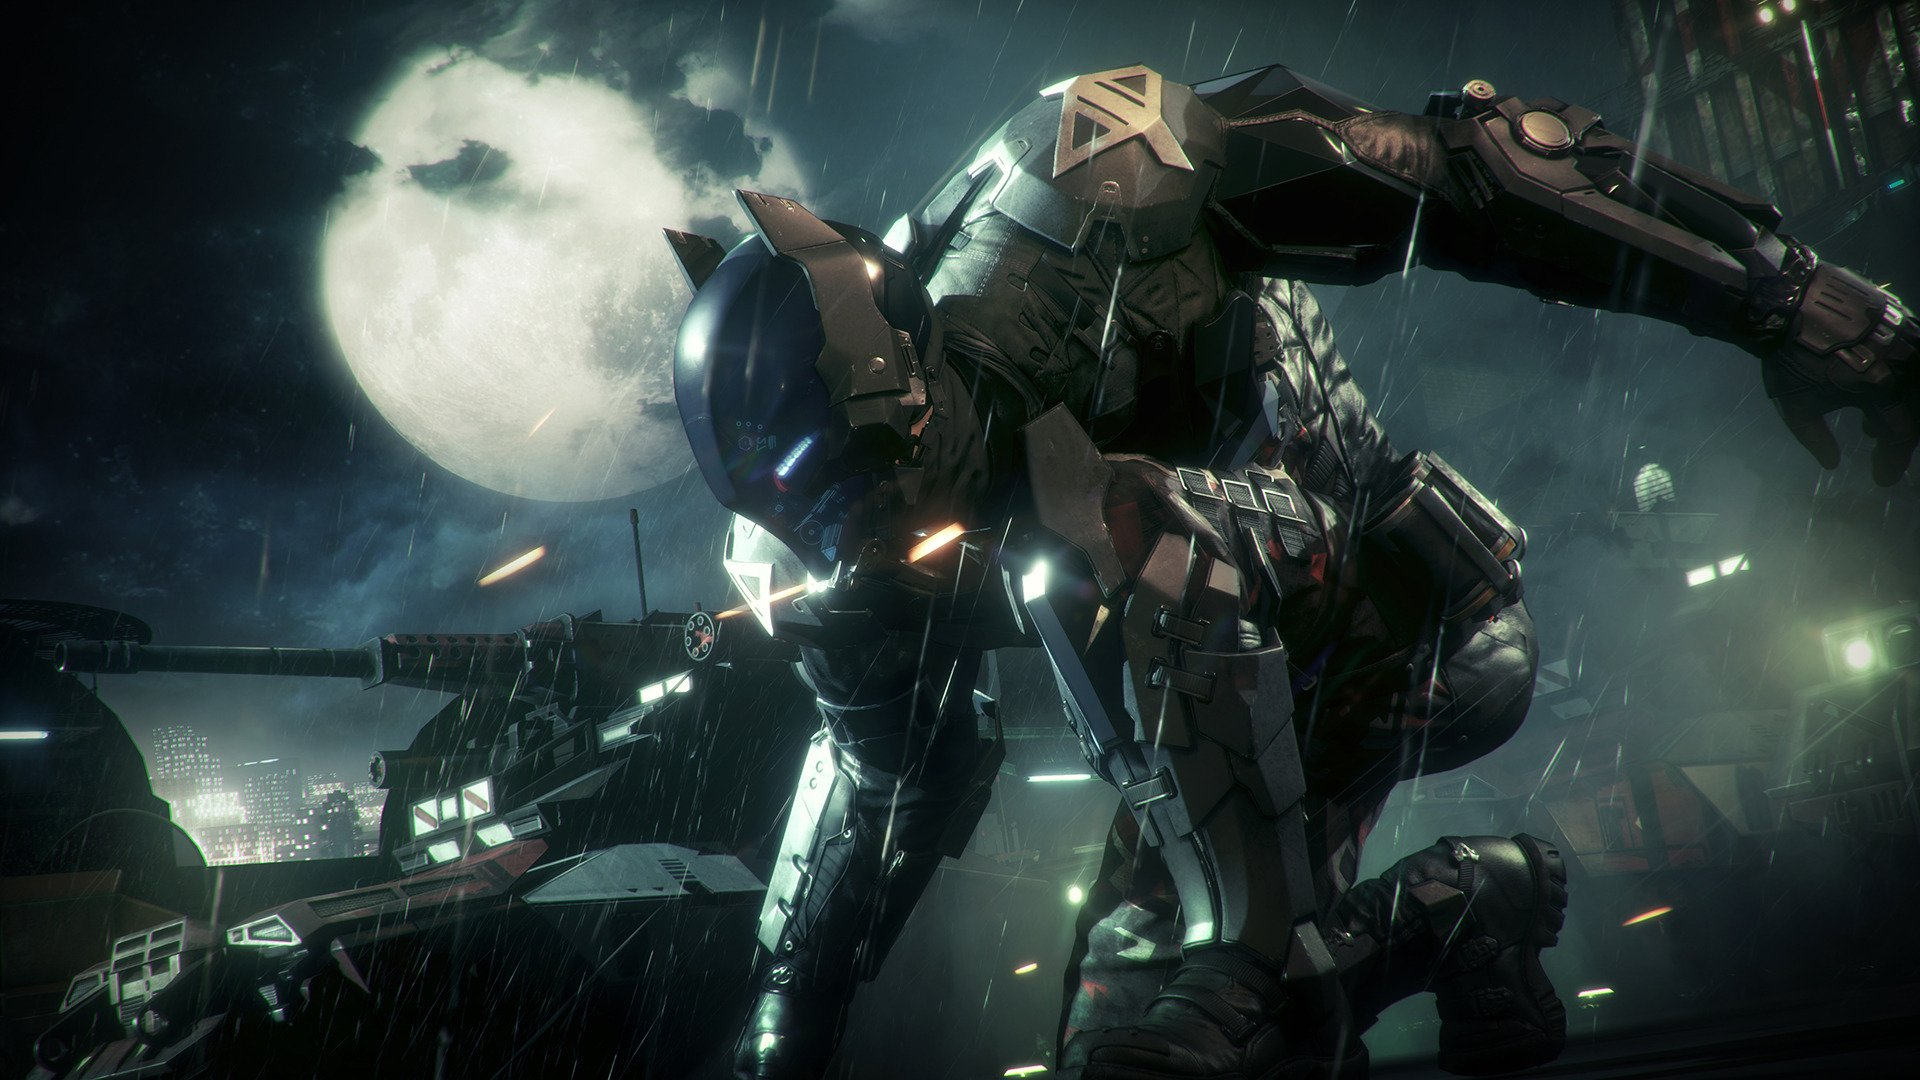 'Batman: Arkham Knight' Is A Great Game With One Major Flaw